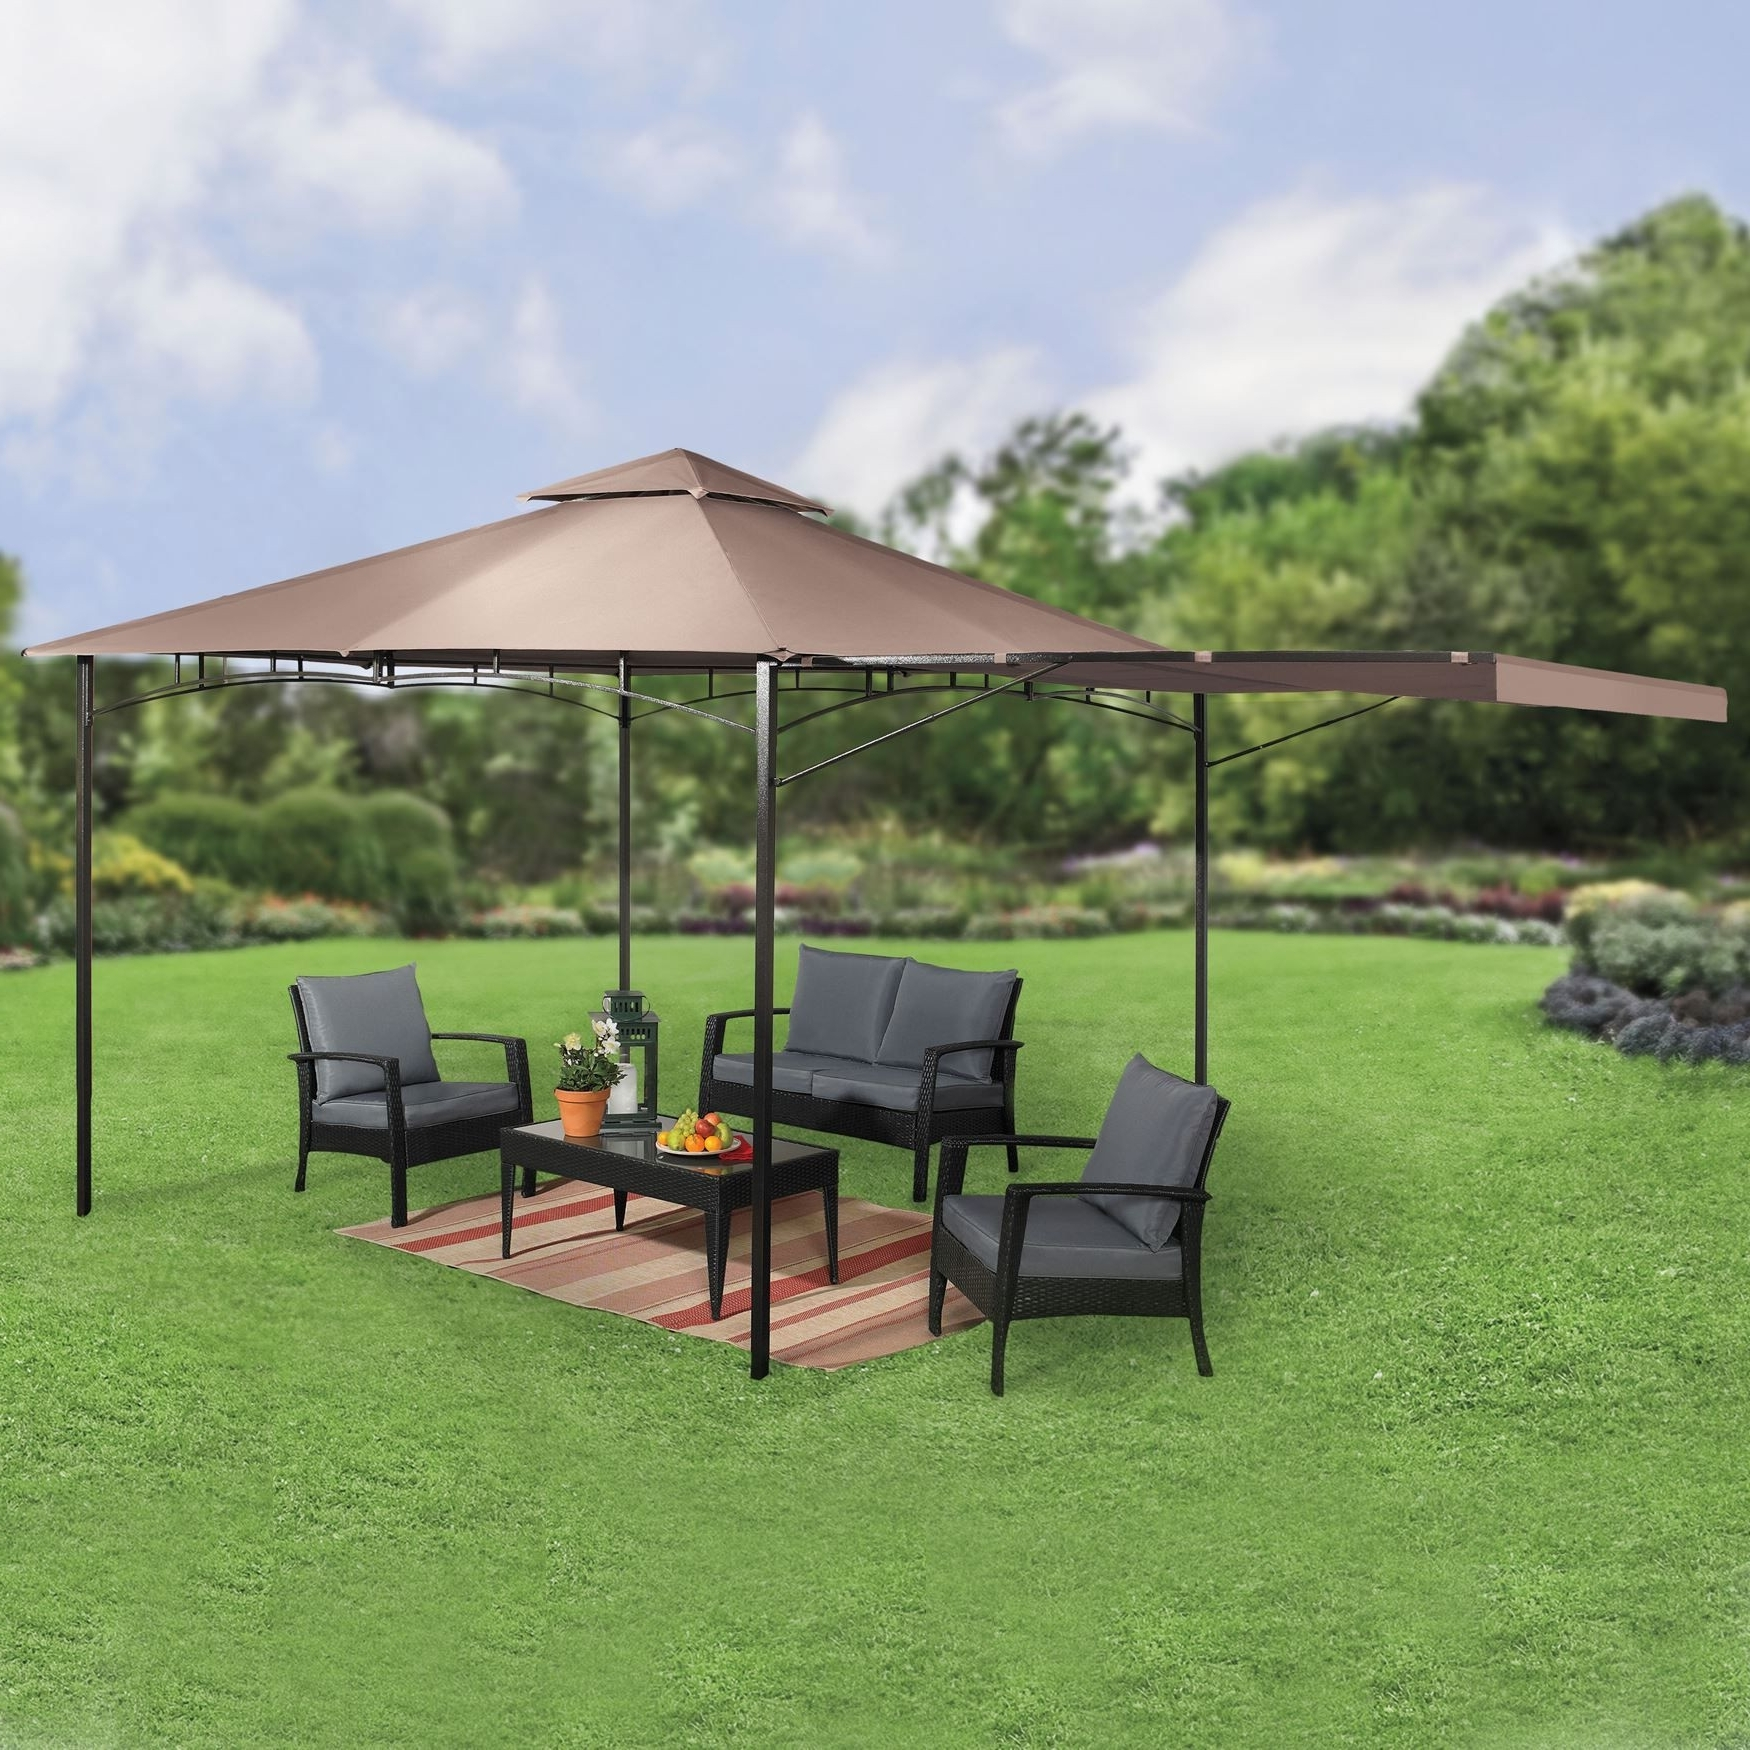 Extended Patio Umbrellas With Regard To Recent Find Out Full Gallery Of 13 Plus Patio Umbrella Gazebo – Displaying (View 14 of 20)